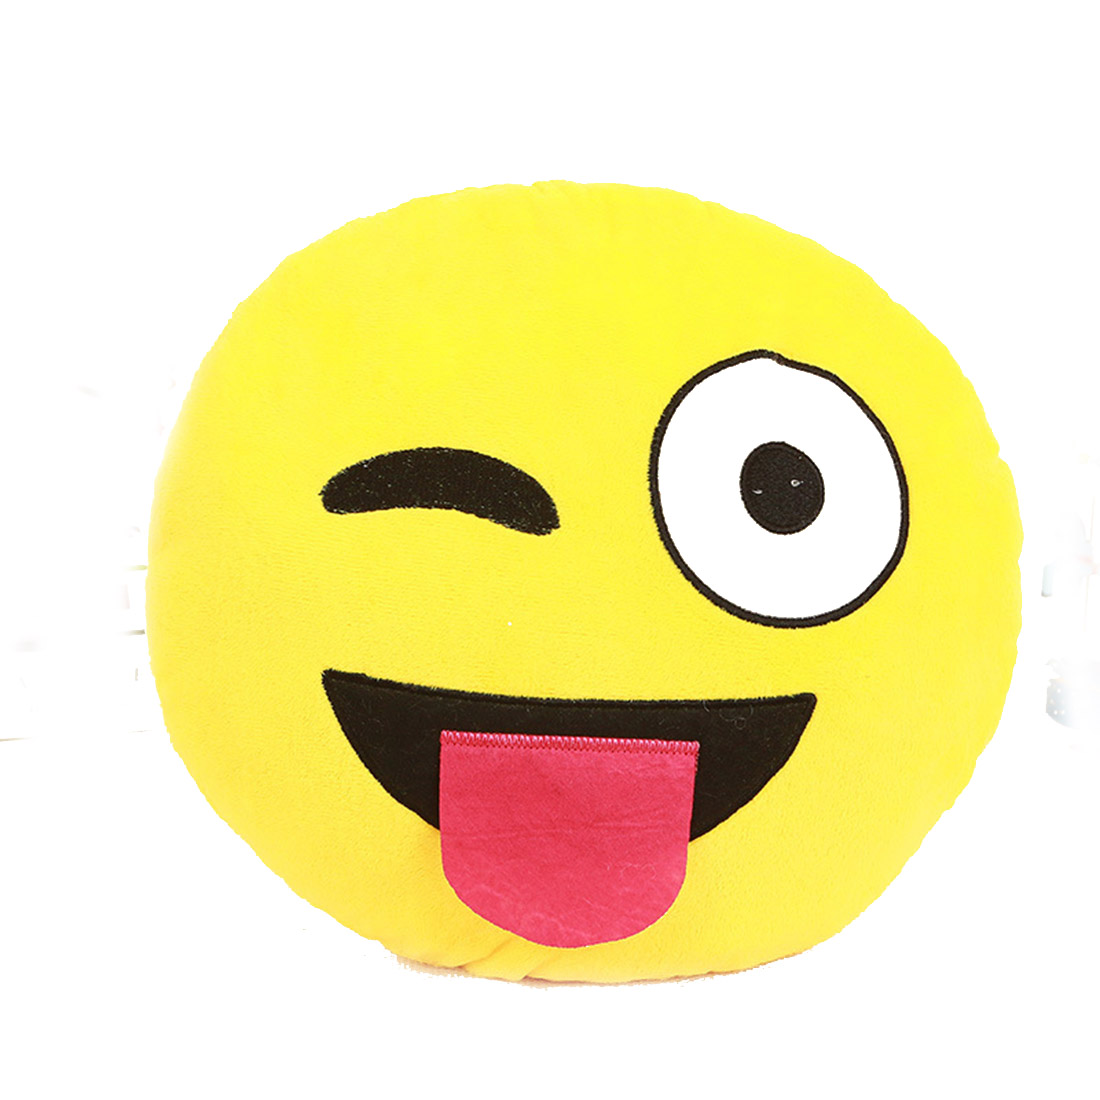 Cute Emoji Smiley Yellow Pillows Cushion Washable Cartoon Facial QQ Expression Yellow Round Decorative Pillows Stuffed Plush Toy